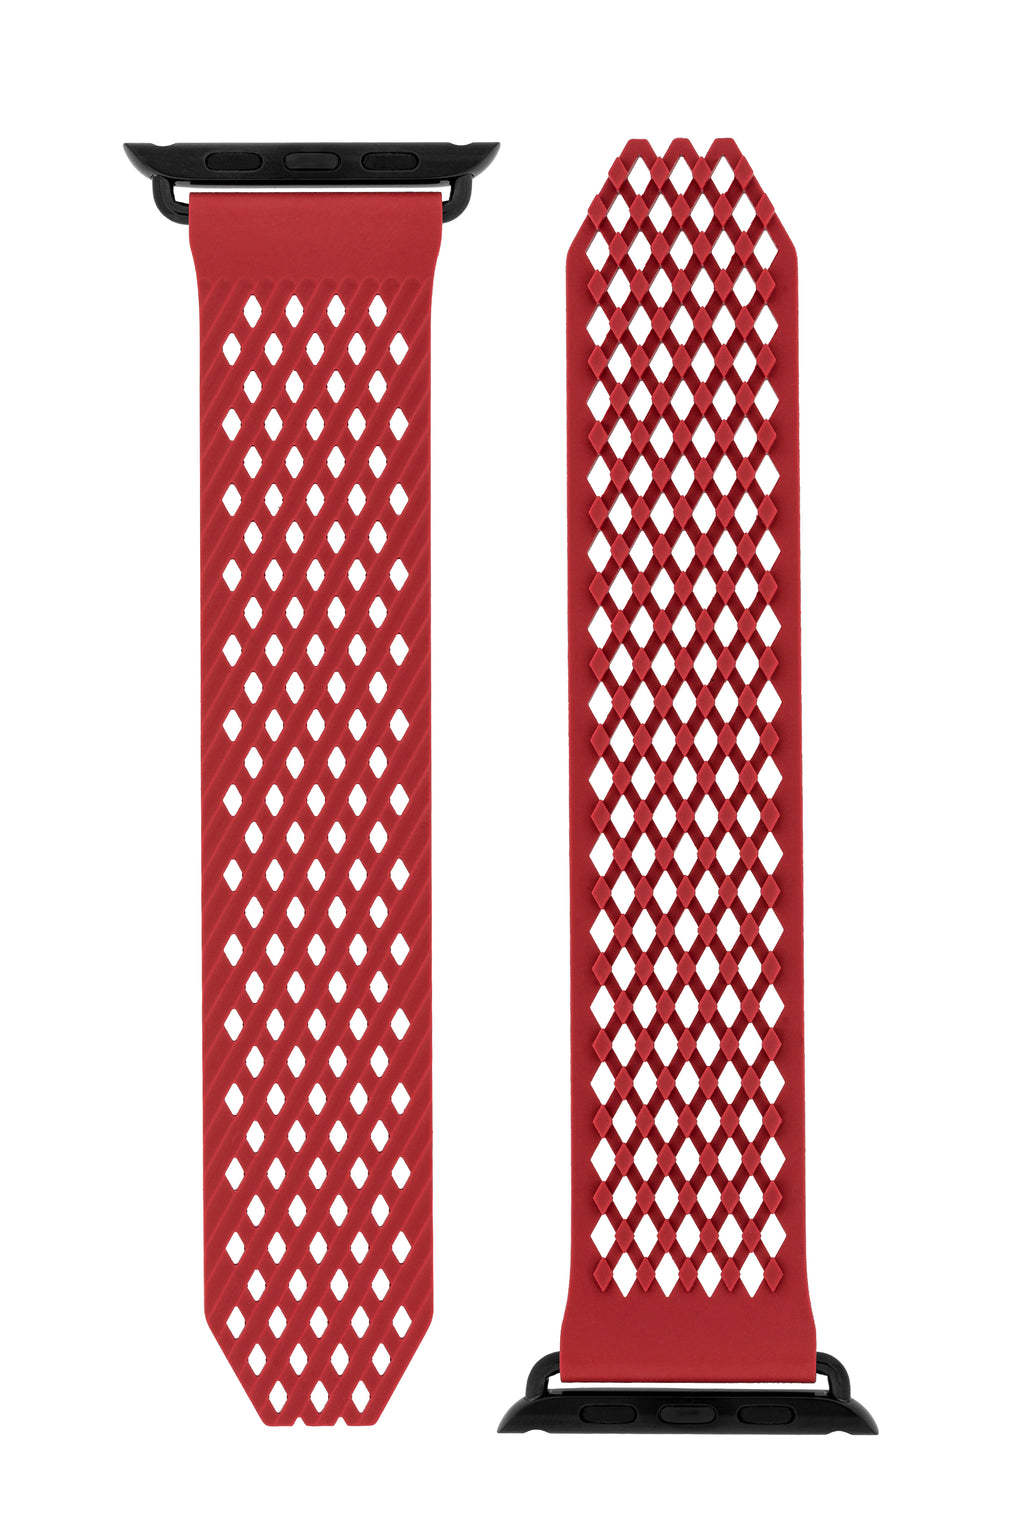 Noomoon LABB Interlocking Watch Strap for Apple Watch in RED with BLACK Hardware